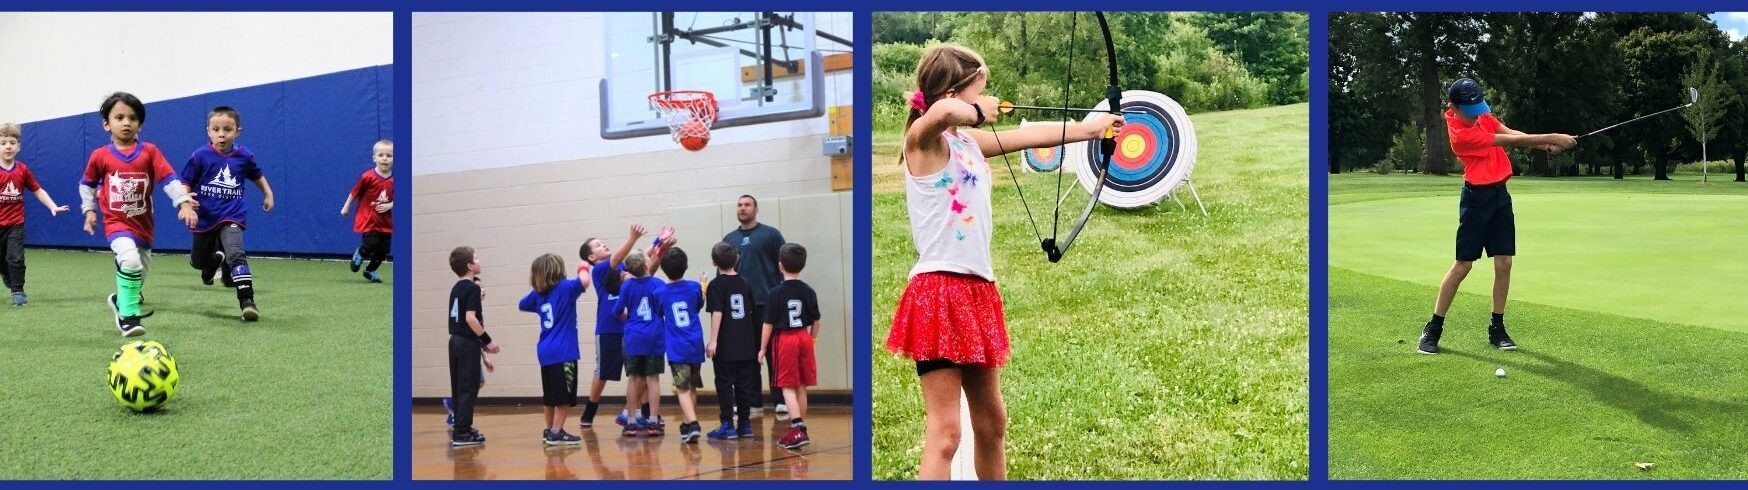 various youth sports